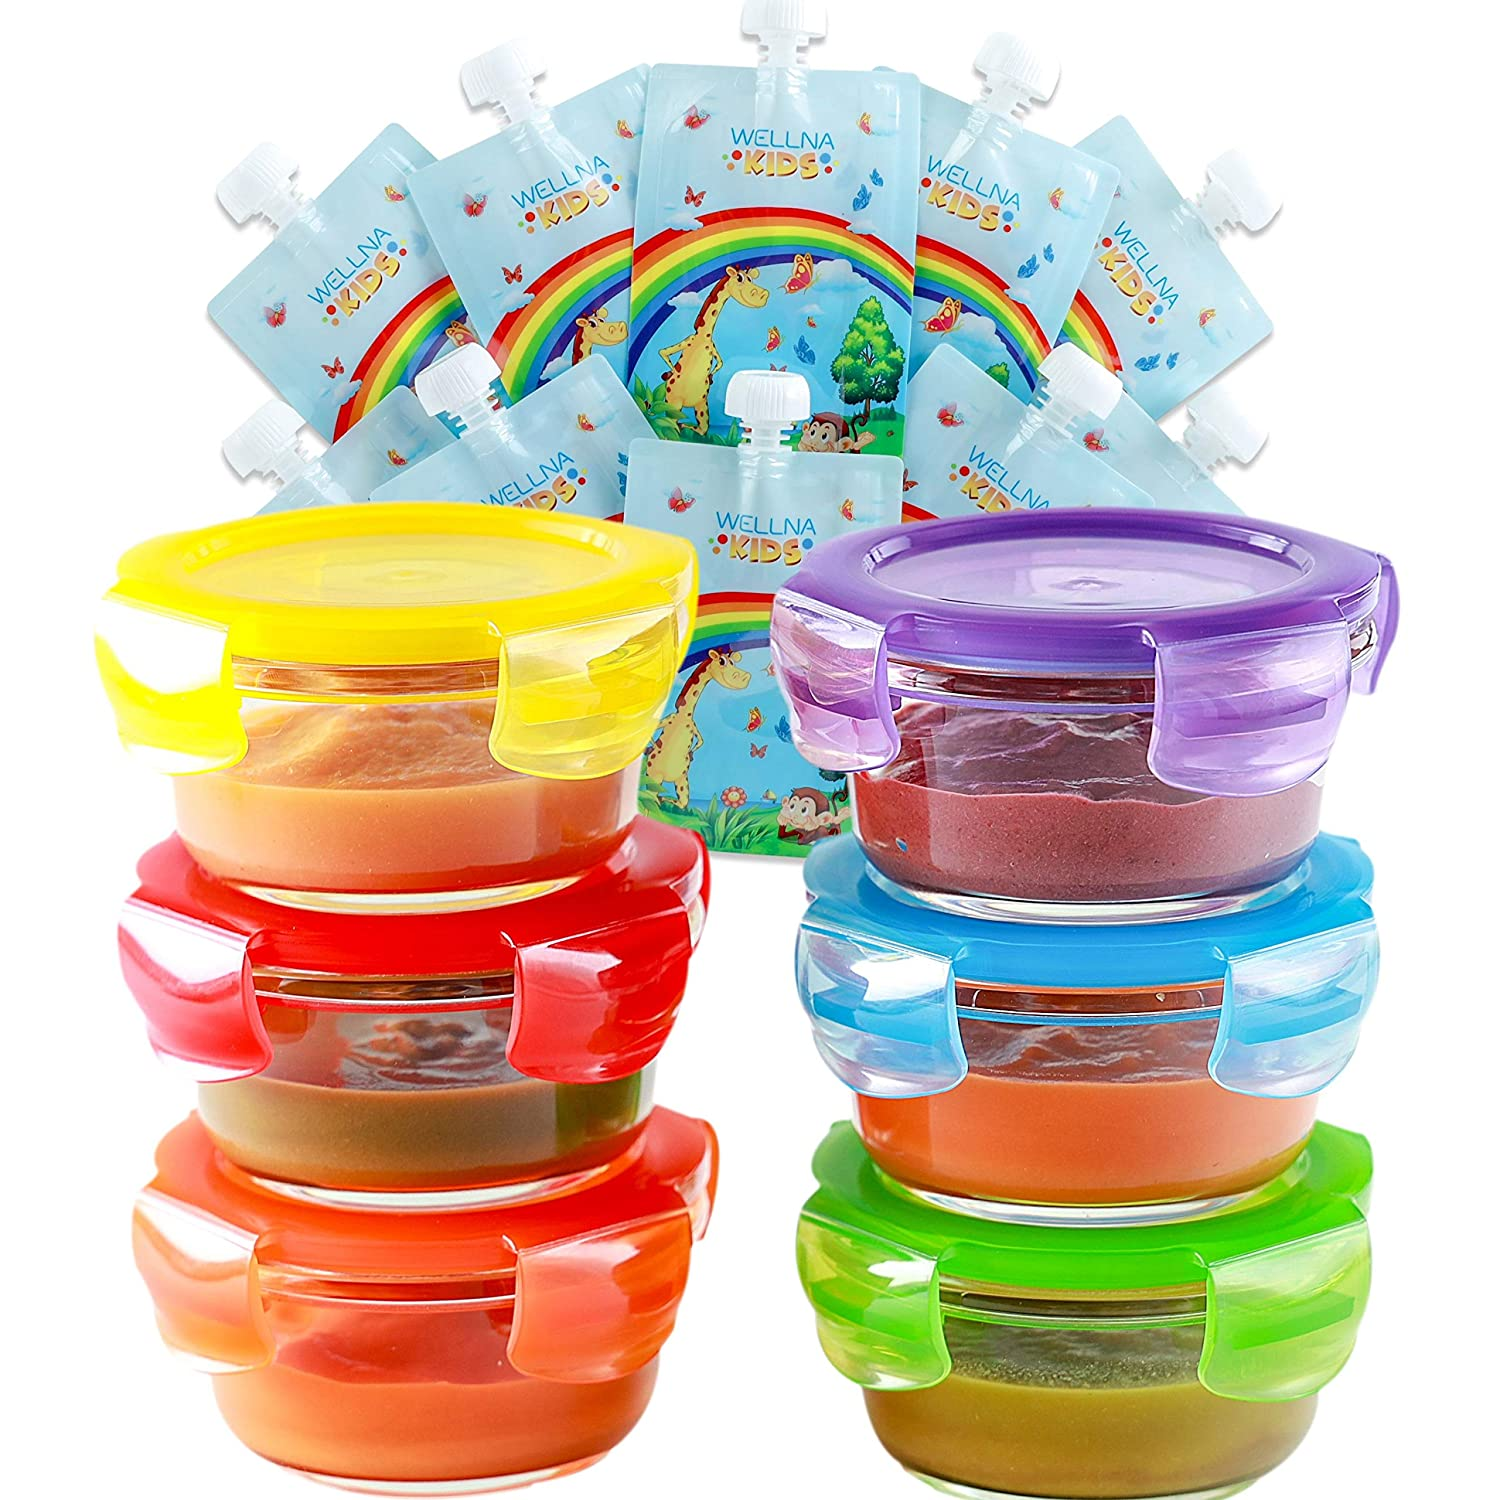 Glass Baby Food Storage Containers with Airtight Lids & Reusable Food Pouches [6+10 Pack] - BPA Free, Microwave, Freezer, Dishwasher Safe, Homemade Baby Food, Snacks (1 Pack)